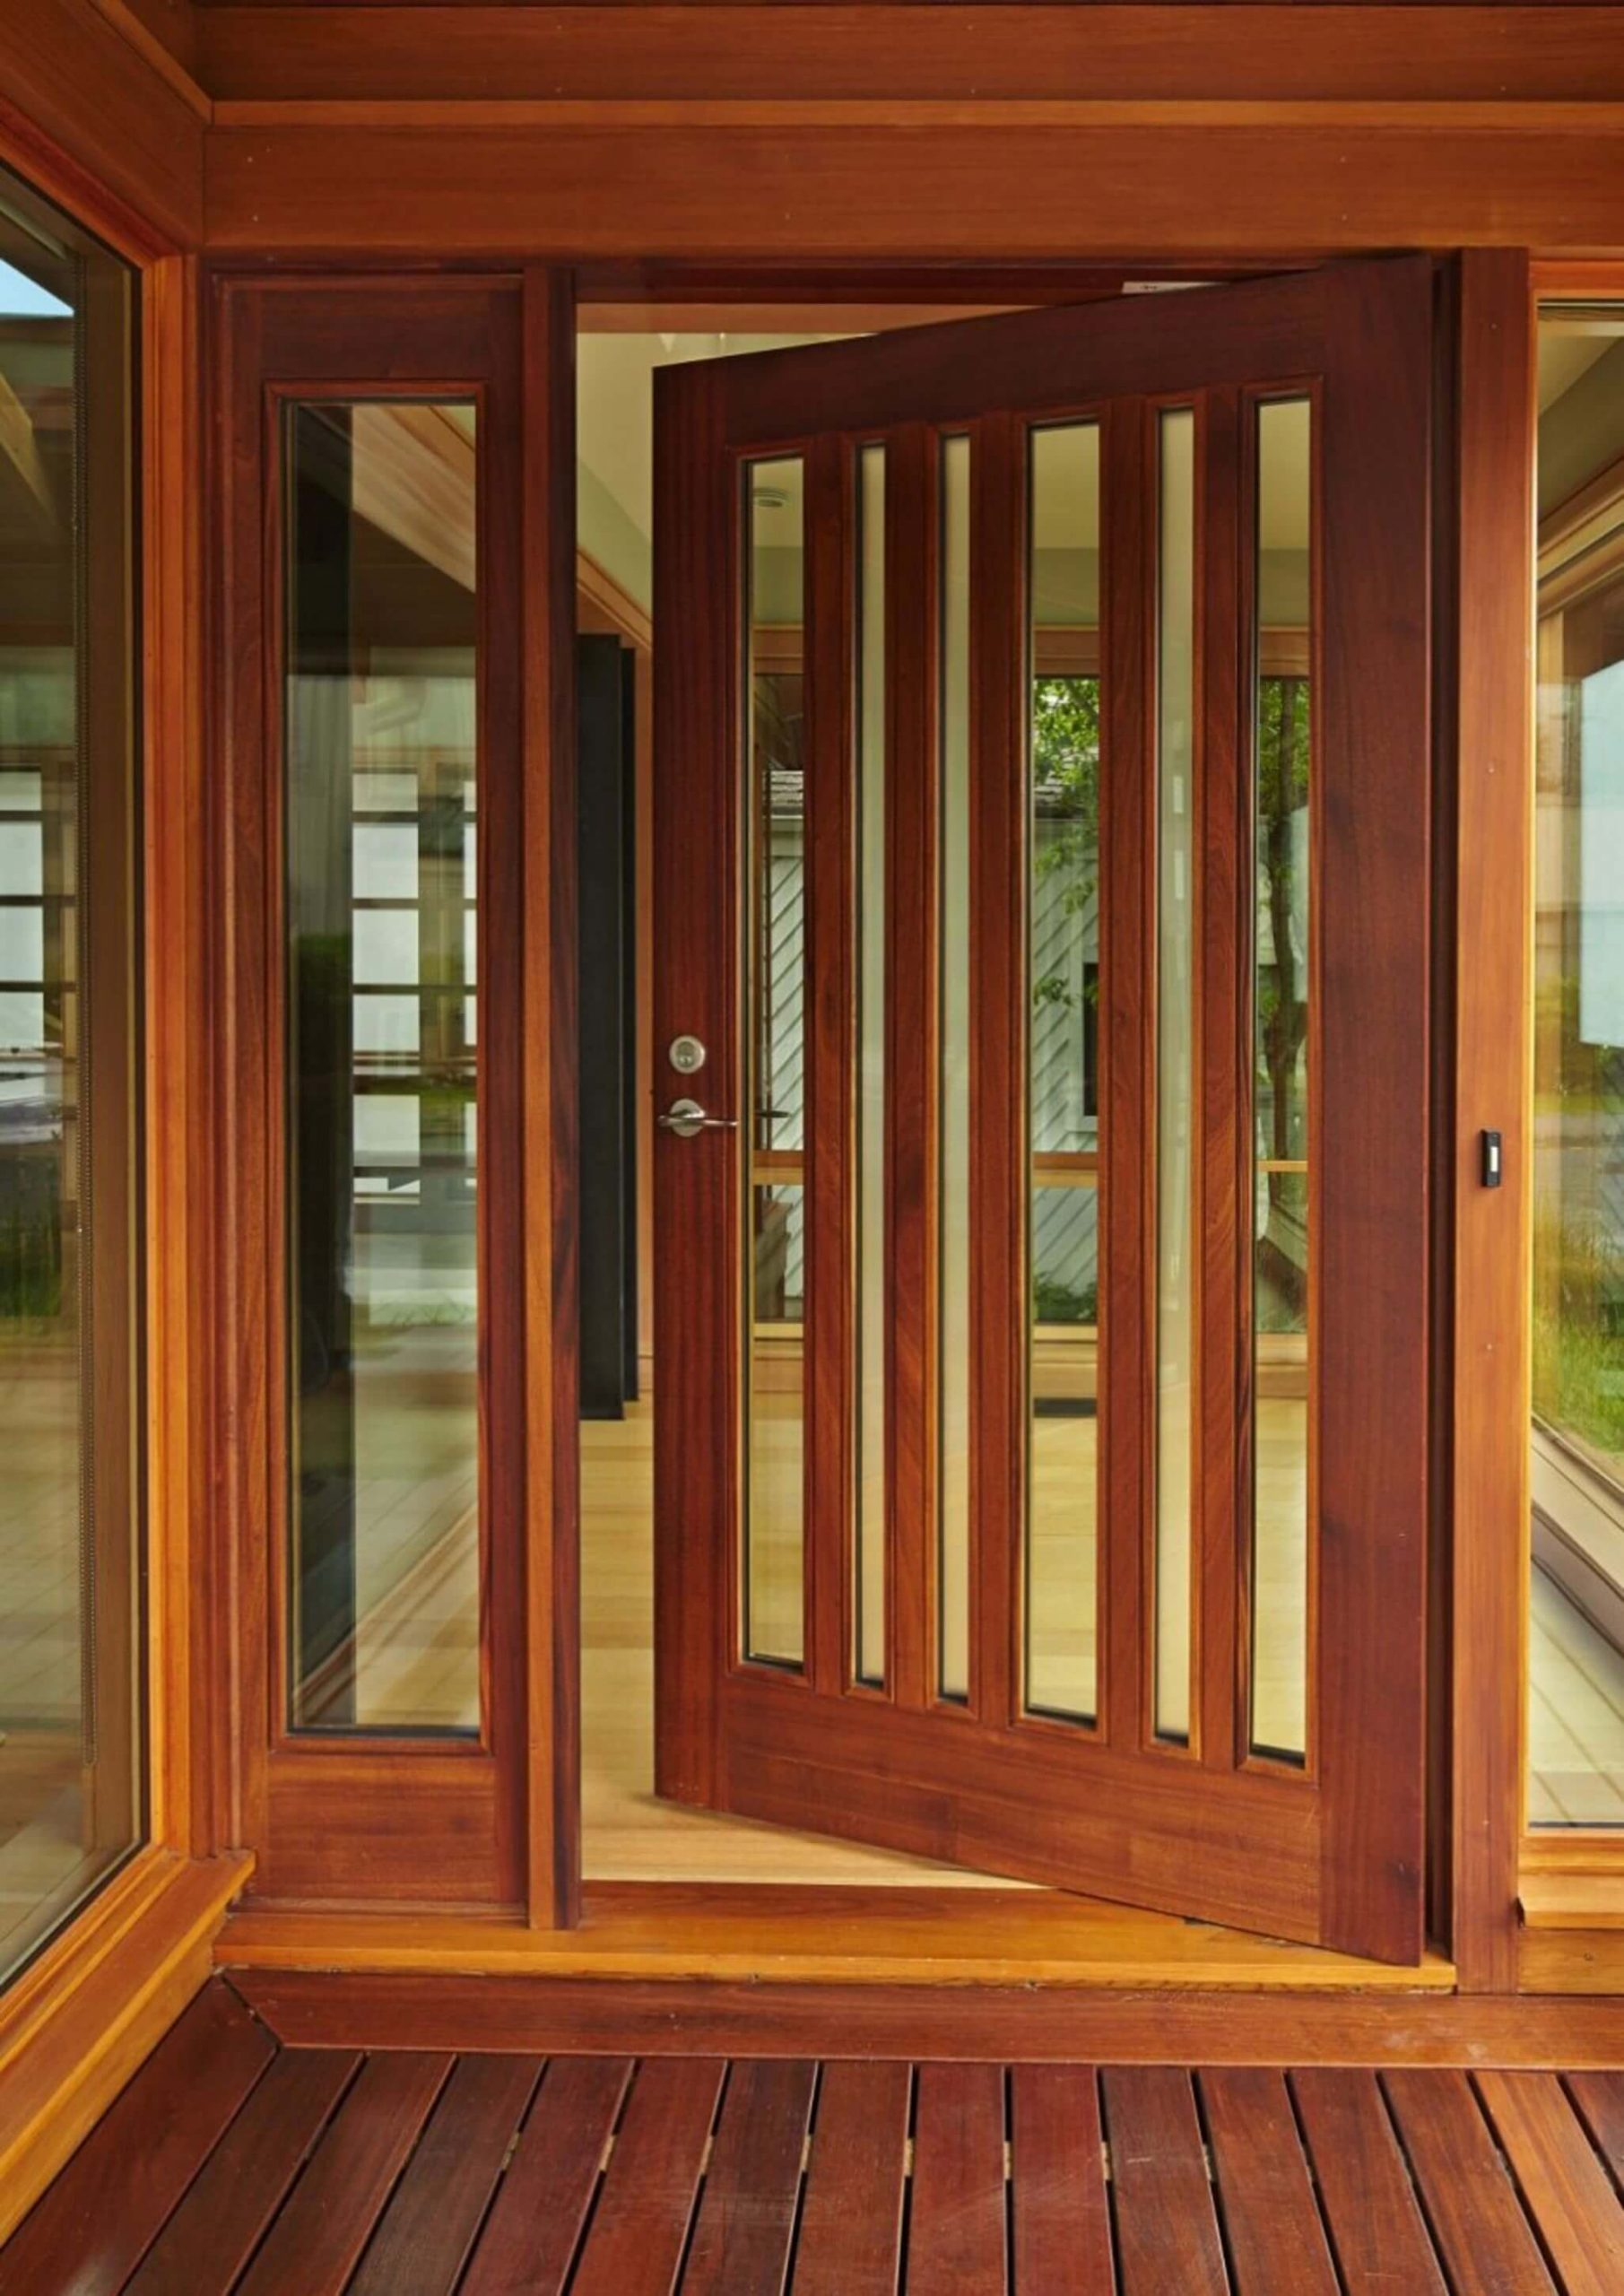 WOOD AND GLASS DOOR ENTRANCE DESIGN IDEAS